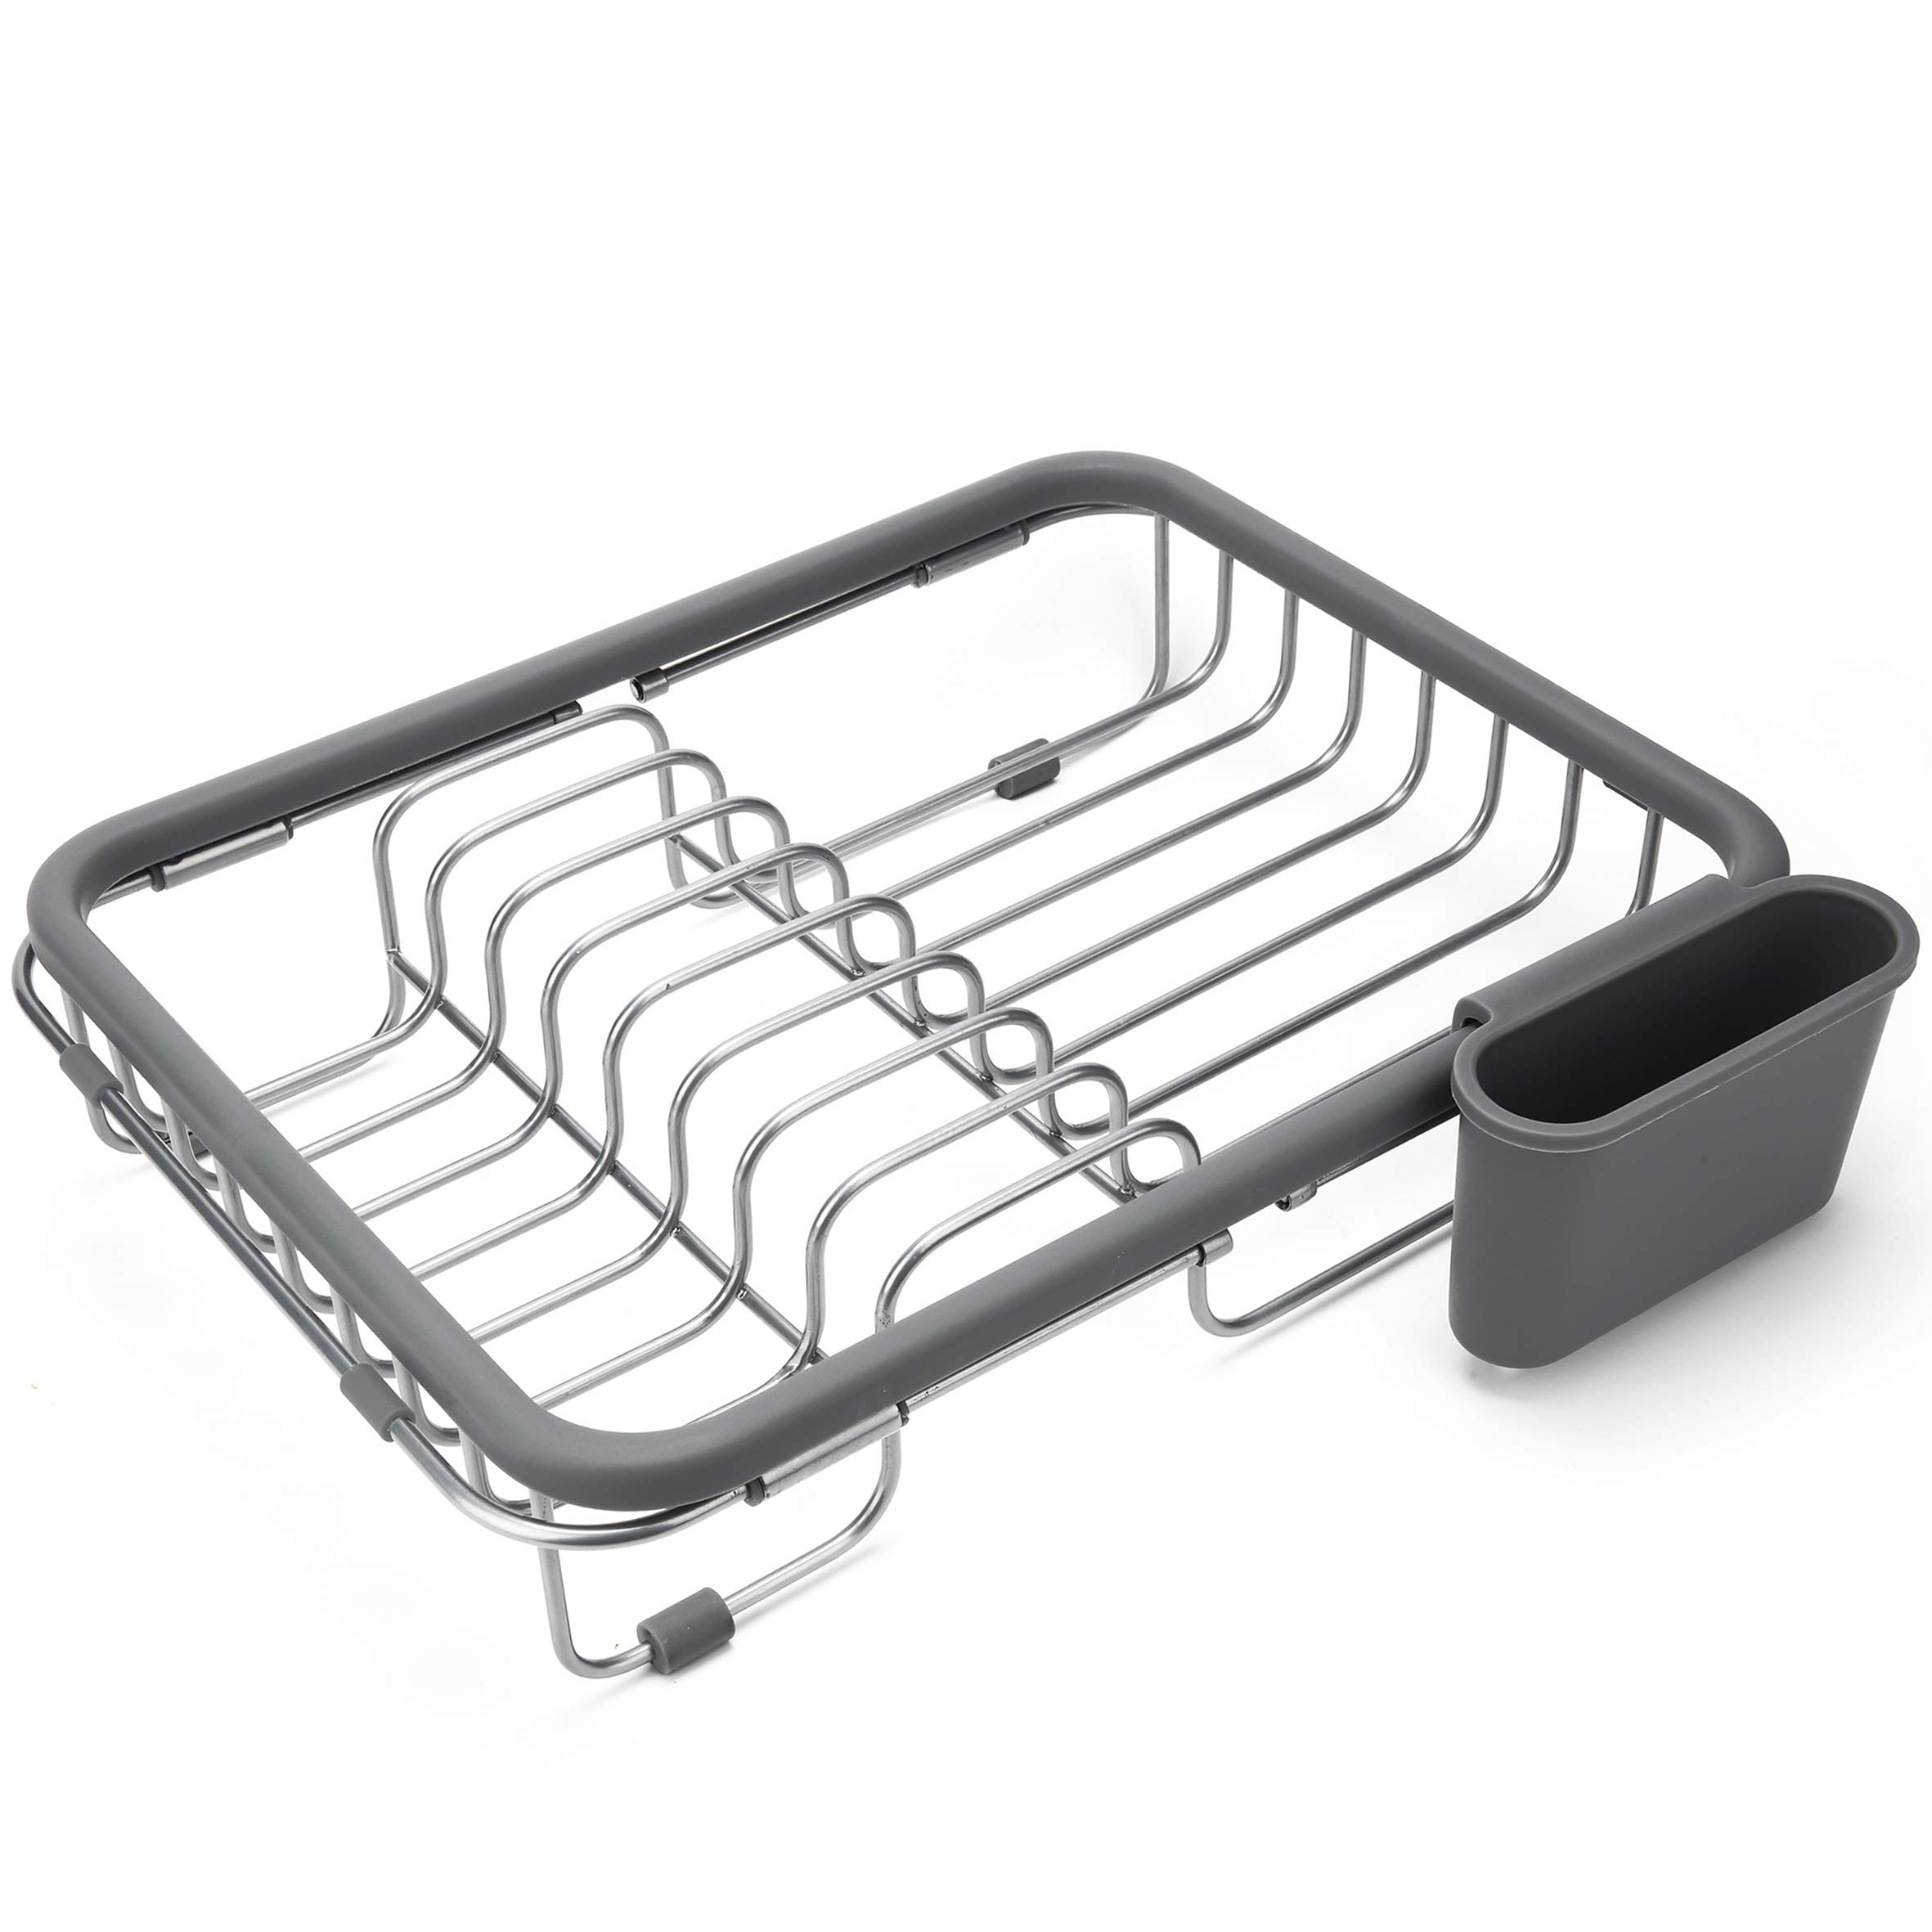 Expandable Dish Draining Rack - Over the Sink Dish Drainer, Dish Rack In Sink Or On Counter With Utensil Holder